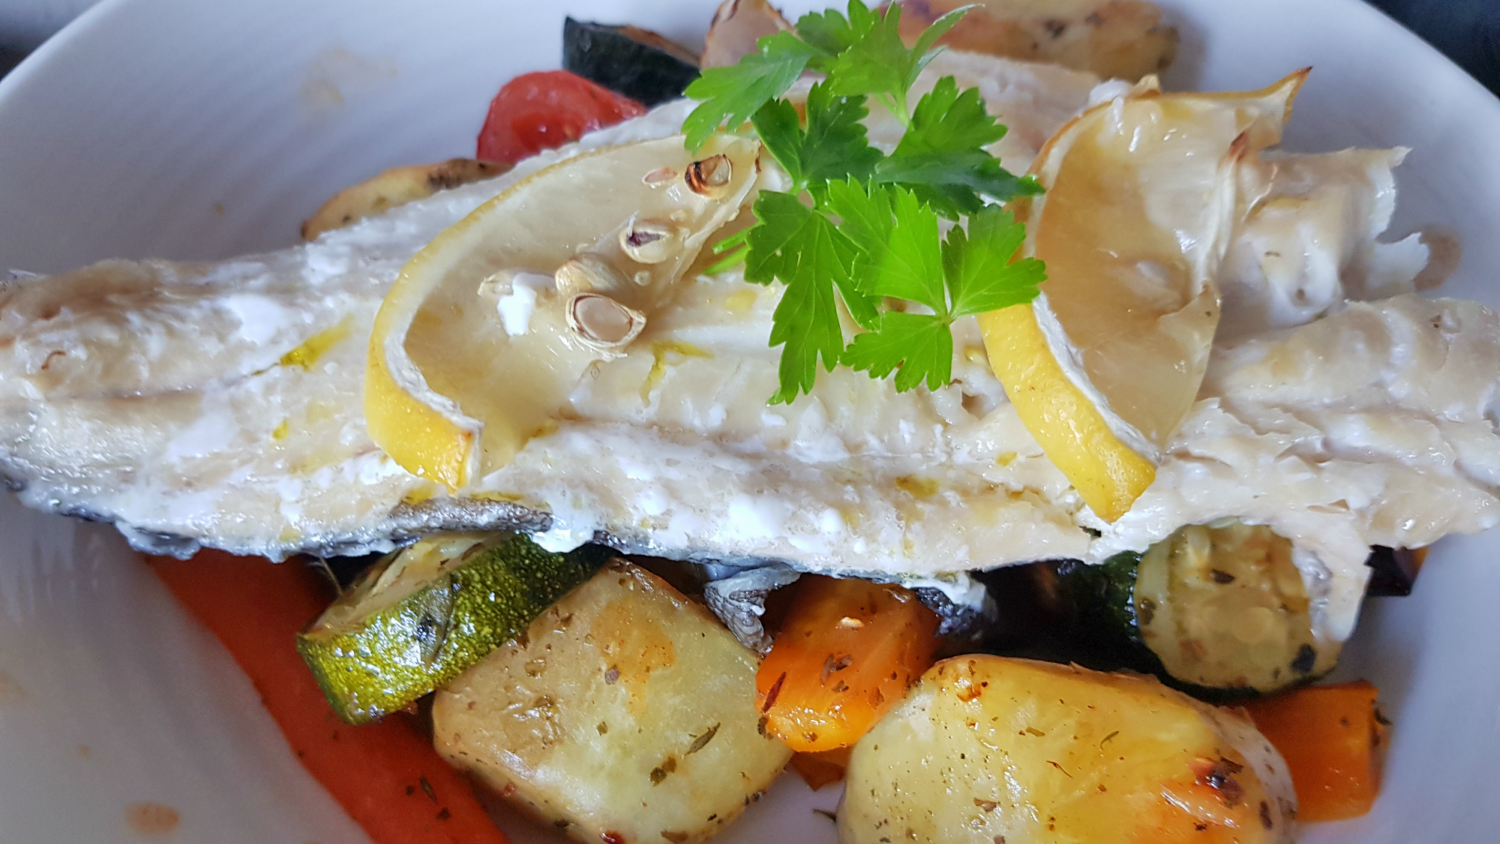 Haddock served with lemon on a bed of roasted vegetables